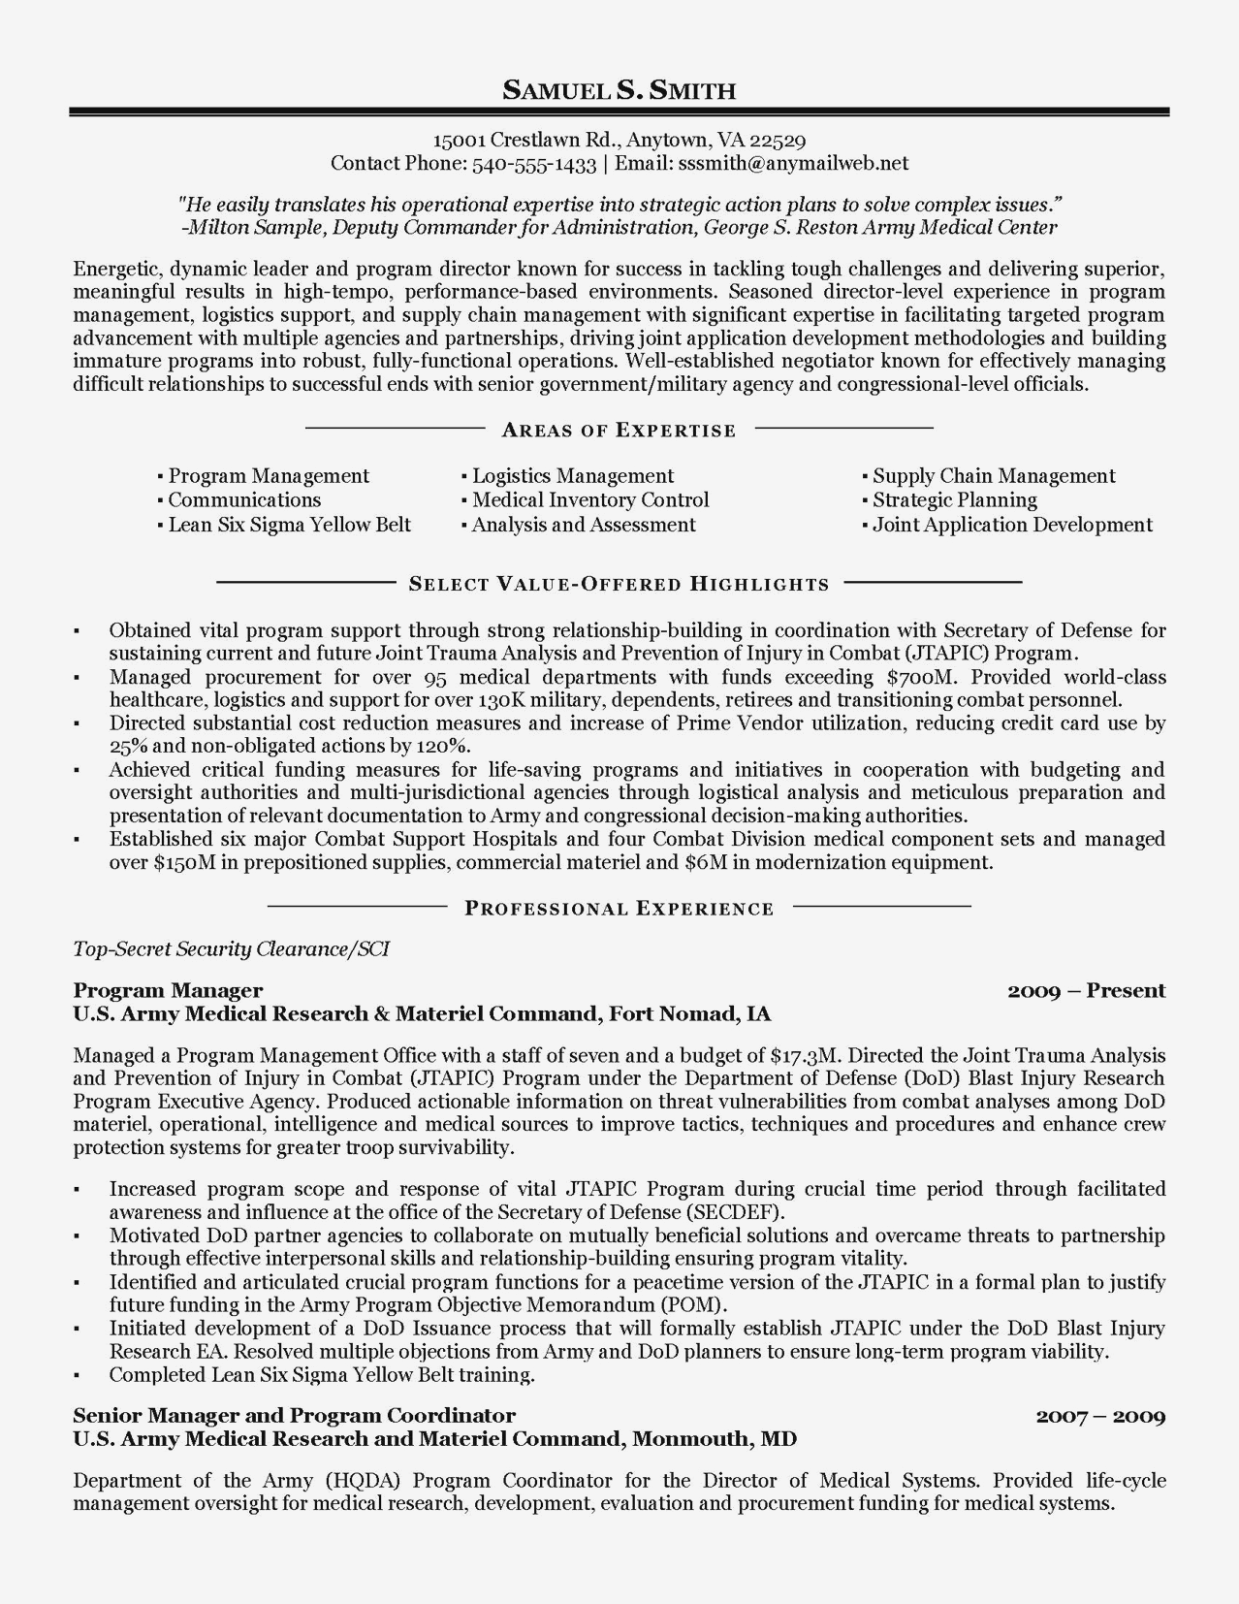 Free Military Resume Builder Online